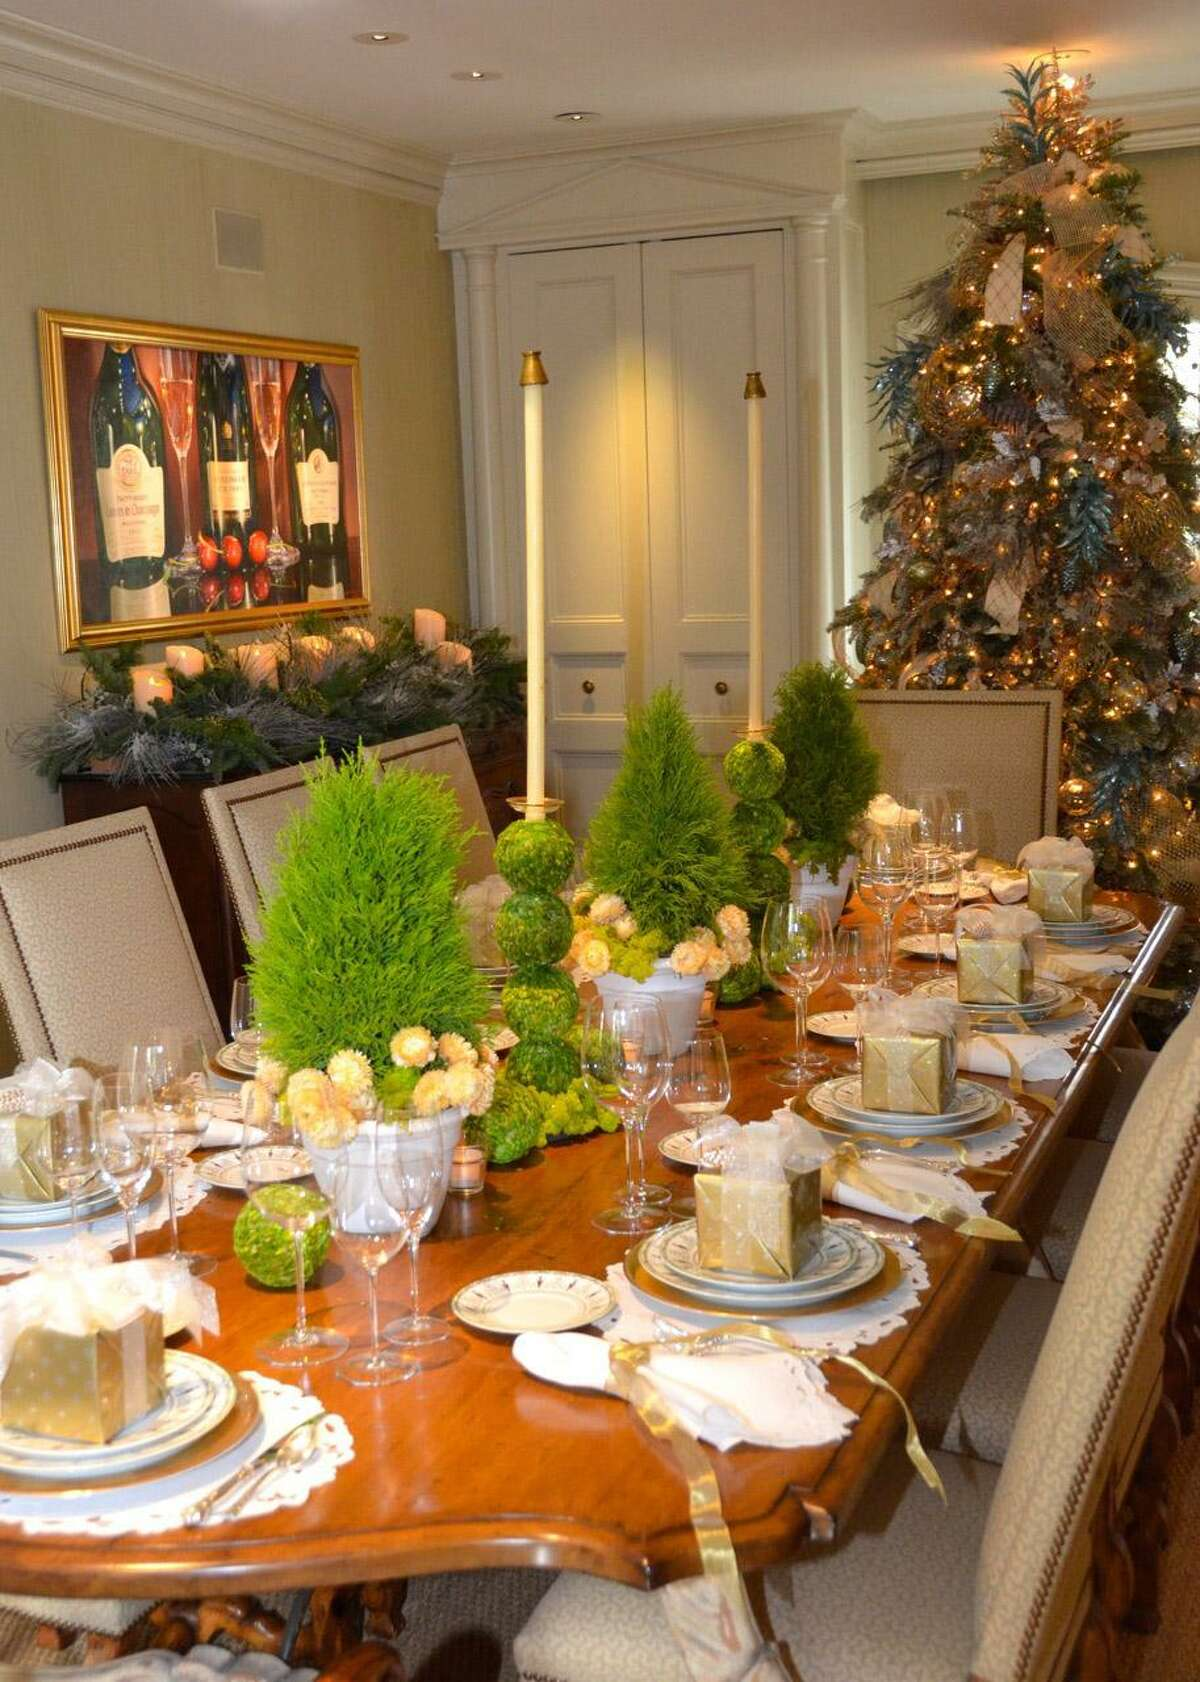 The Kappa Kappa Gamma Charitable Foundation presents Holiday Pilgrimage 2018 with four beautiful homes decorated for the holidays.